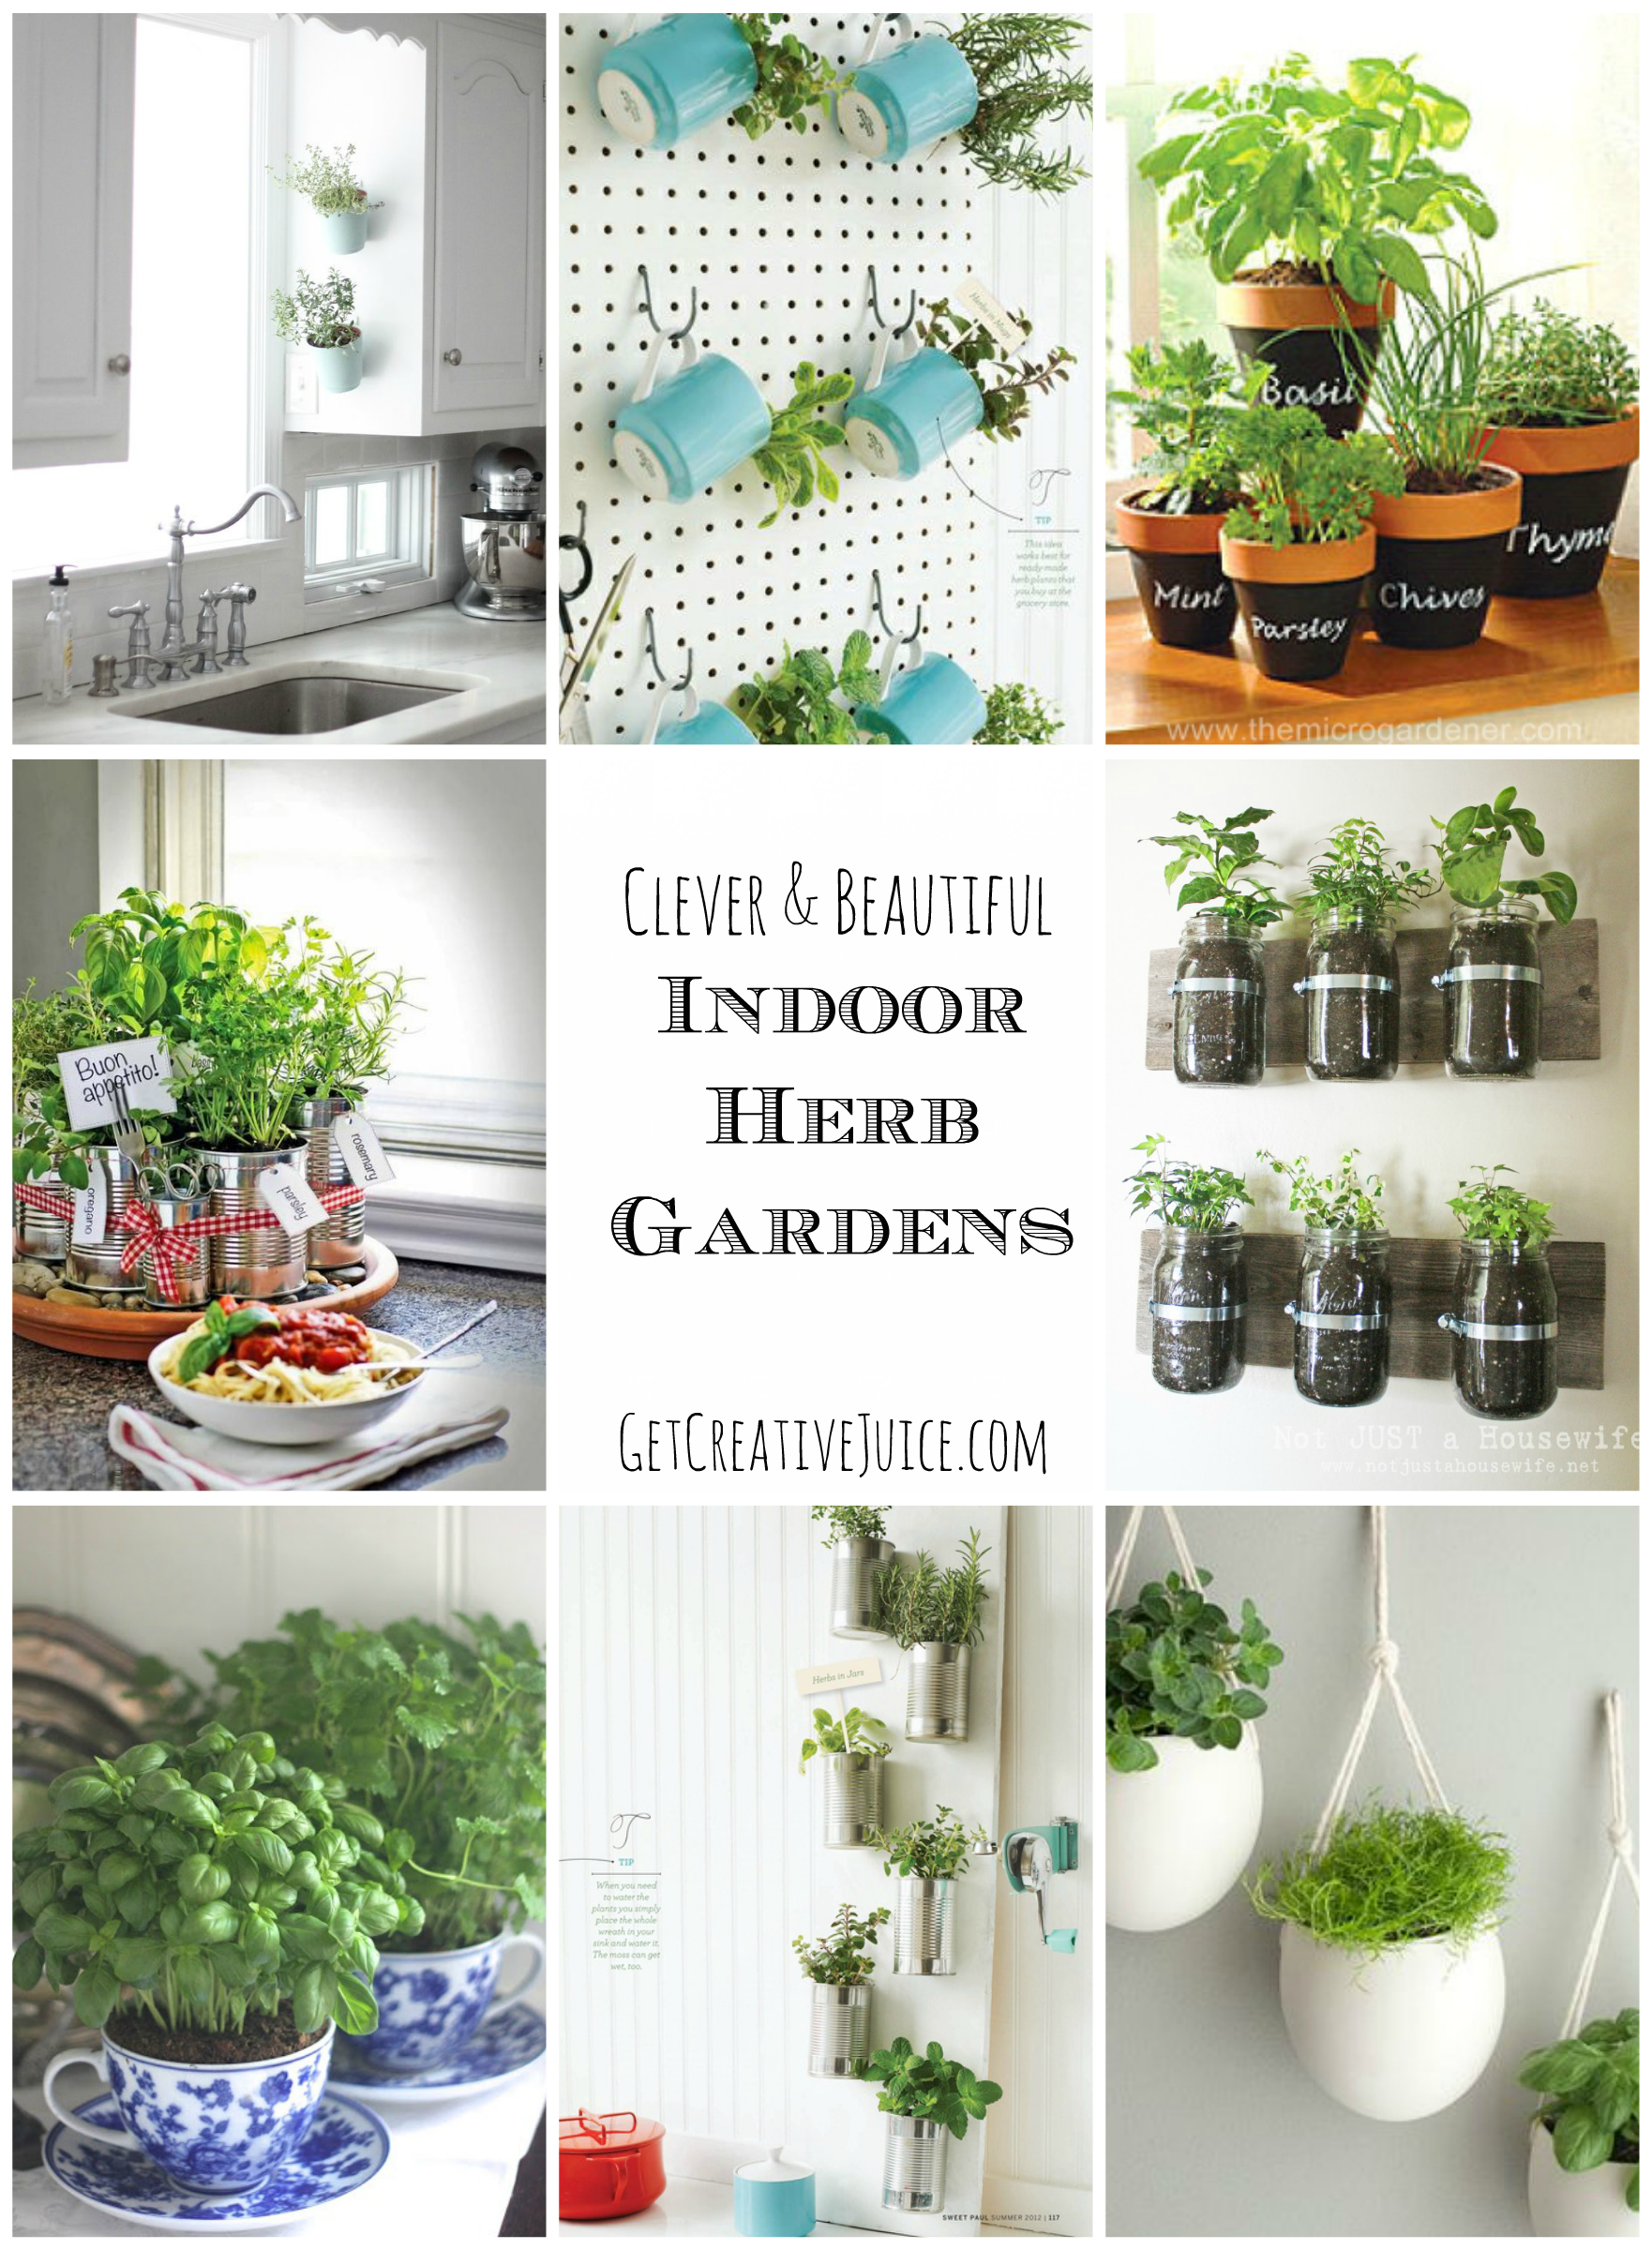 Kitchen Herb Garden Planter Indoor Herb Garden Ideas Creative Juice